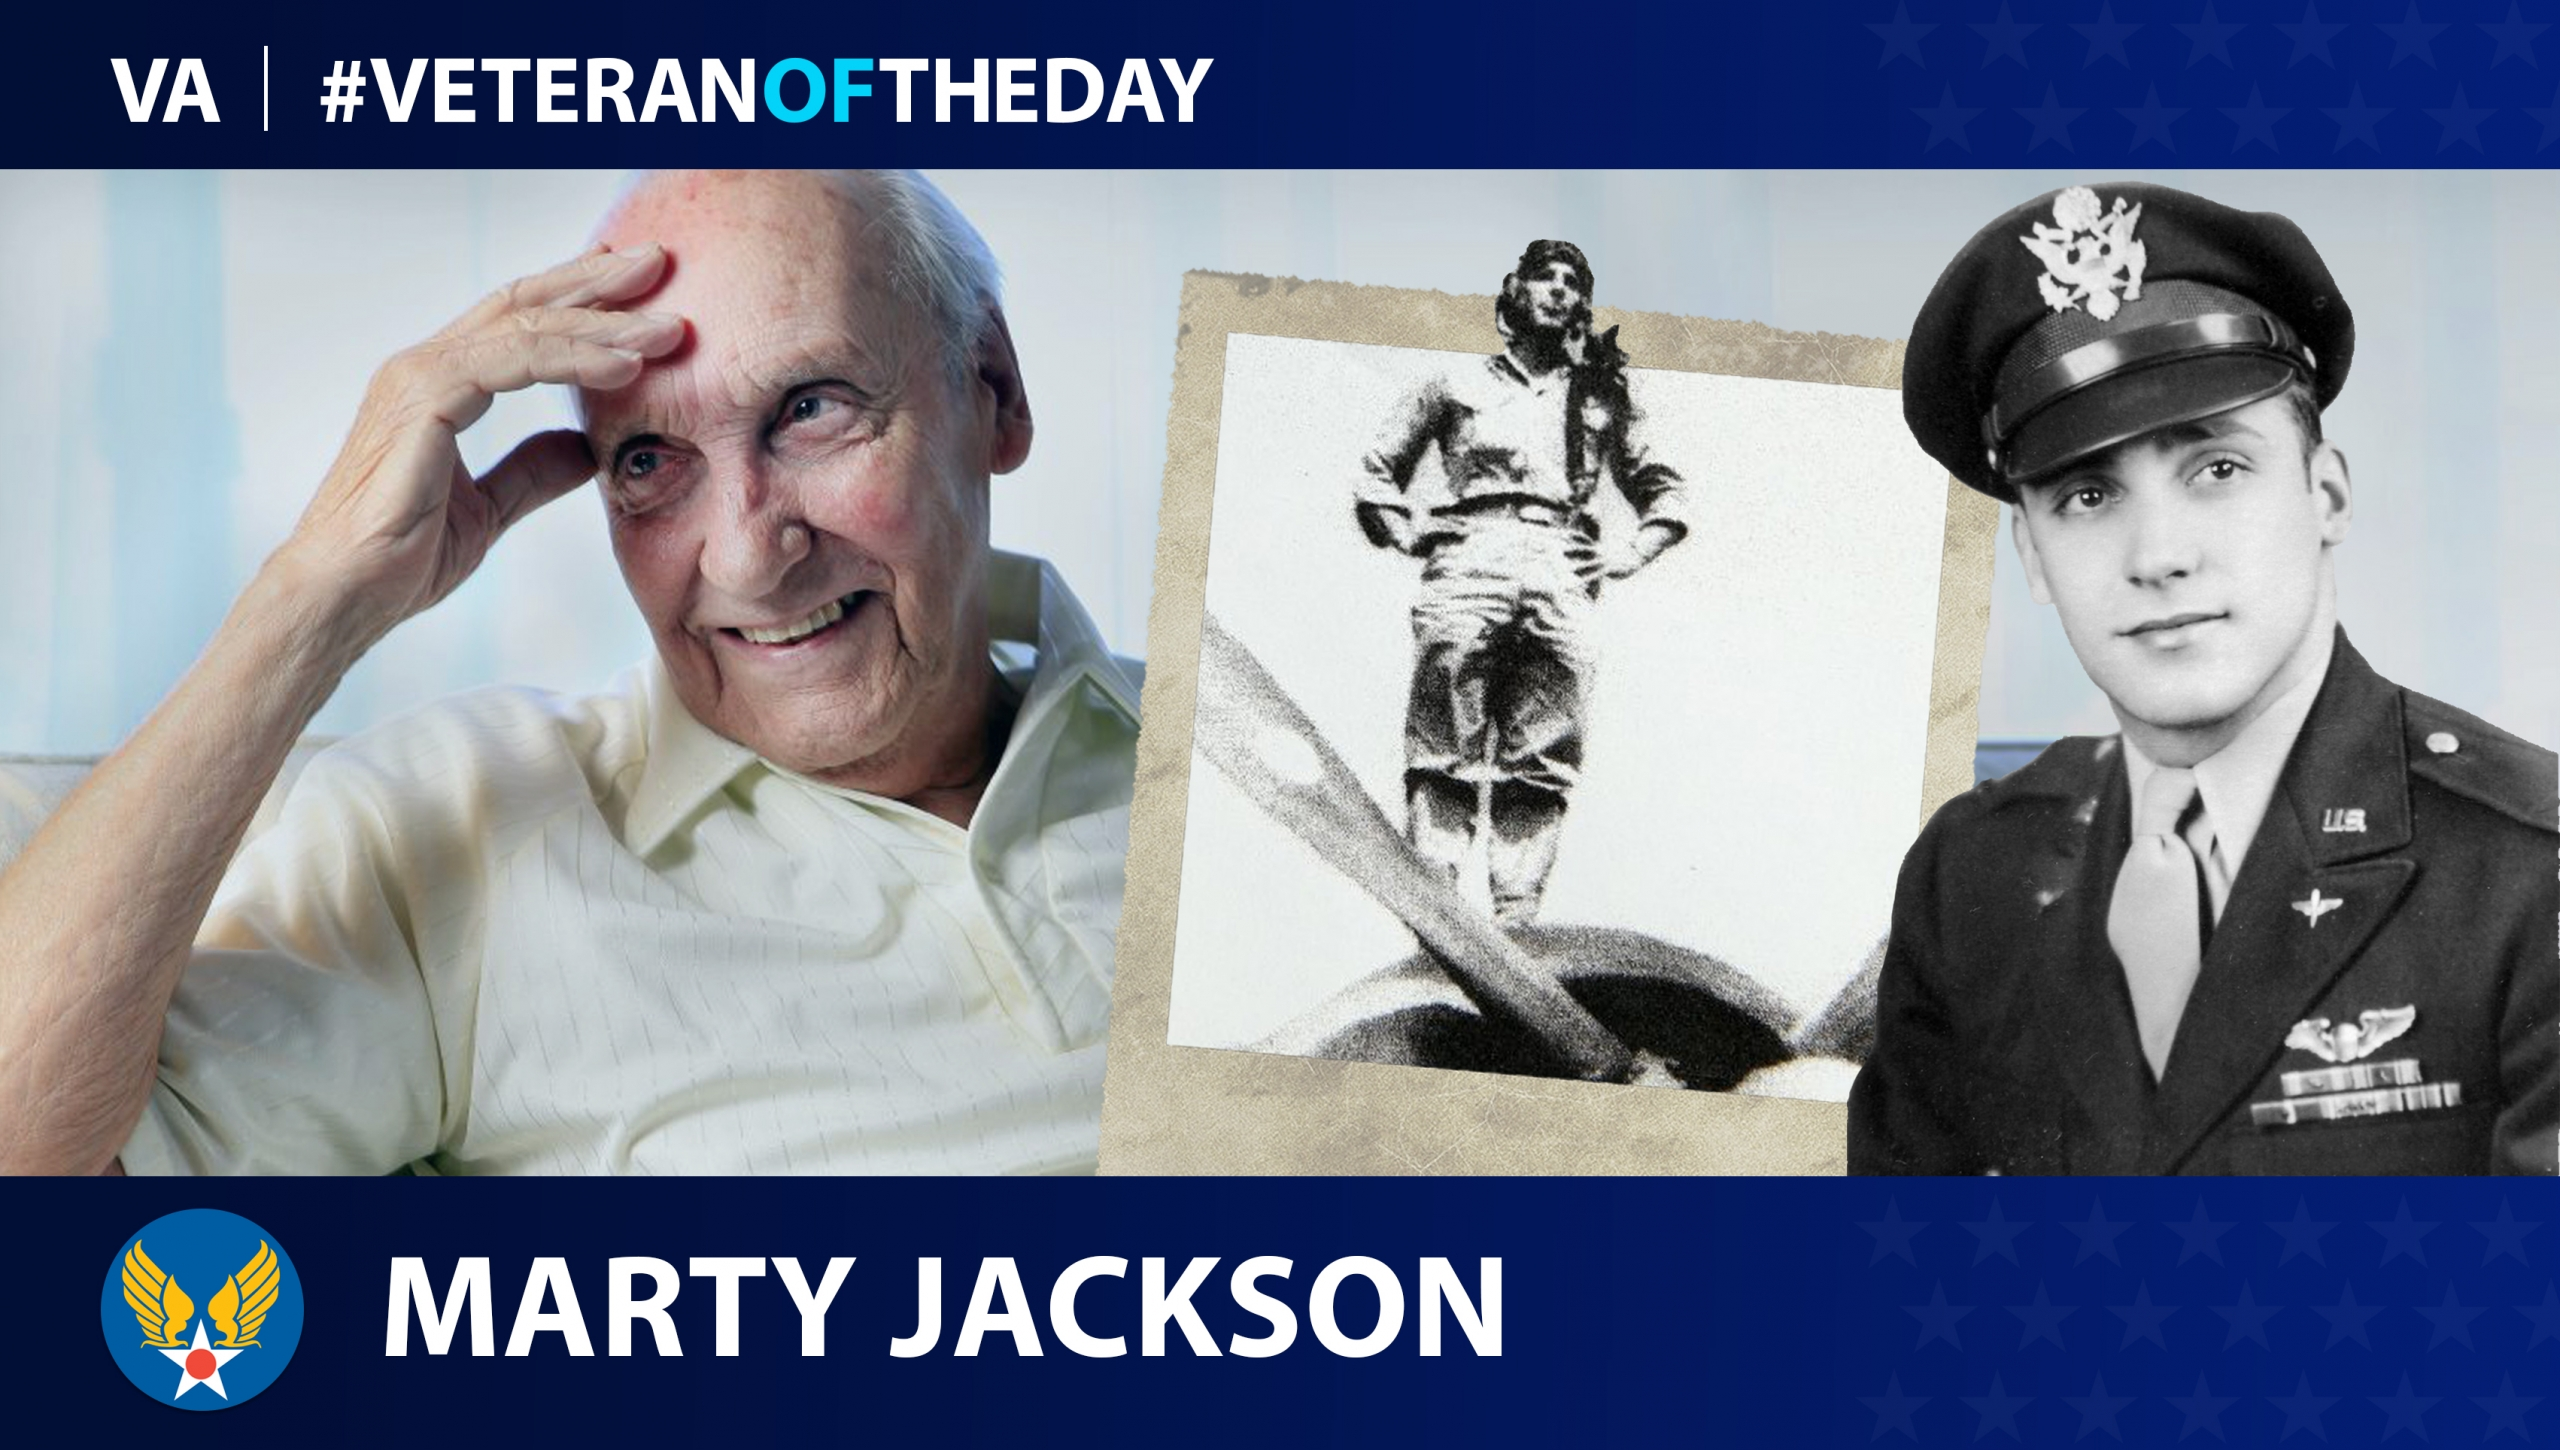 Army Air Forces Veteran Marty Jackson is today's #VeteranOfTheDay.